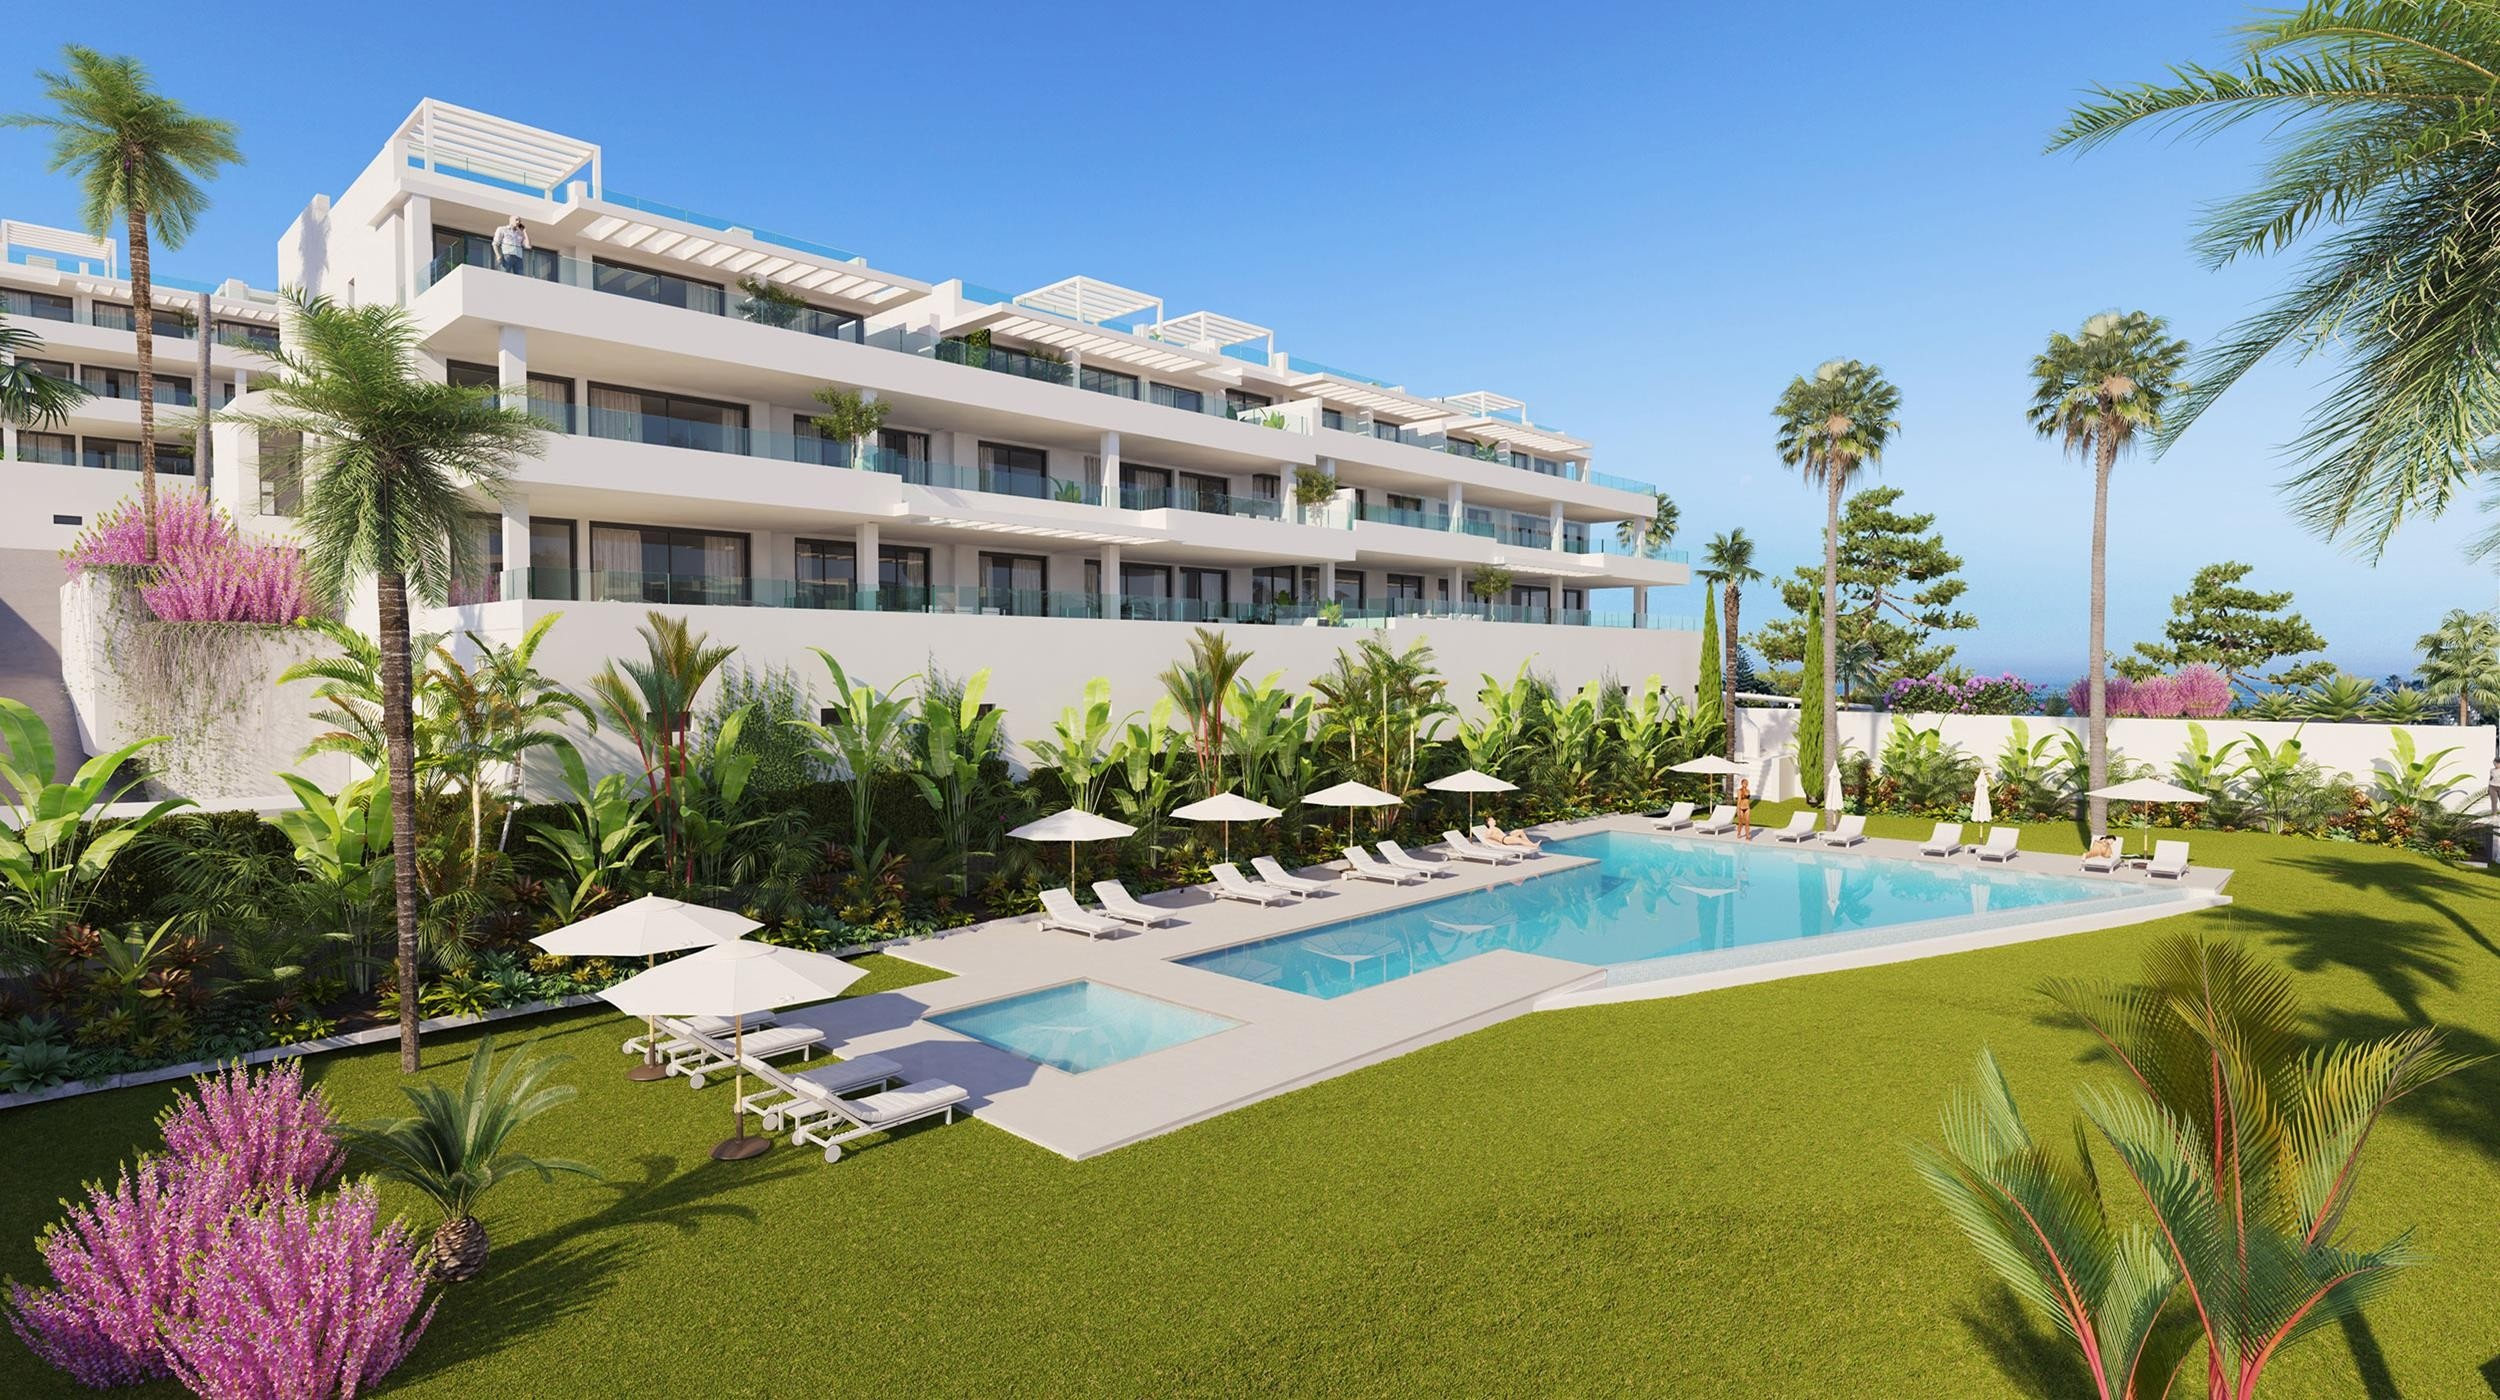 Promotion of modern apartments in Estepona.